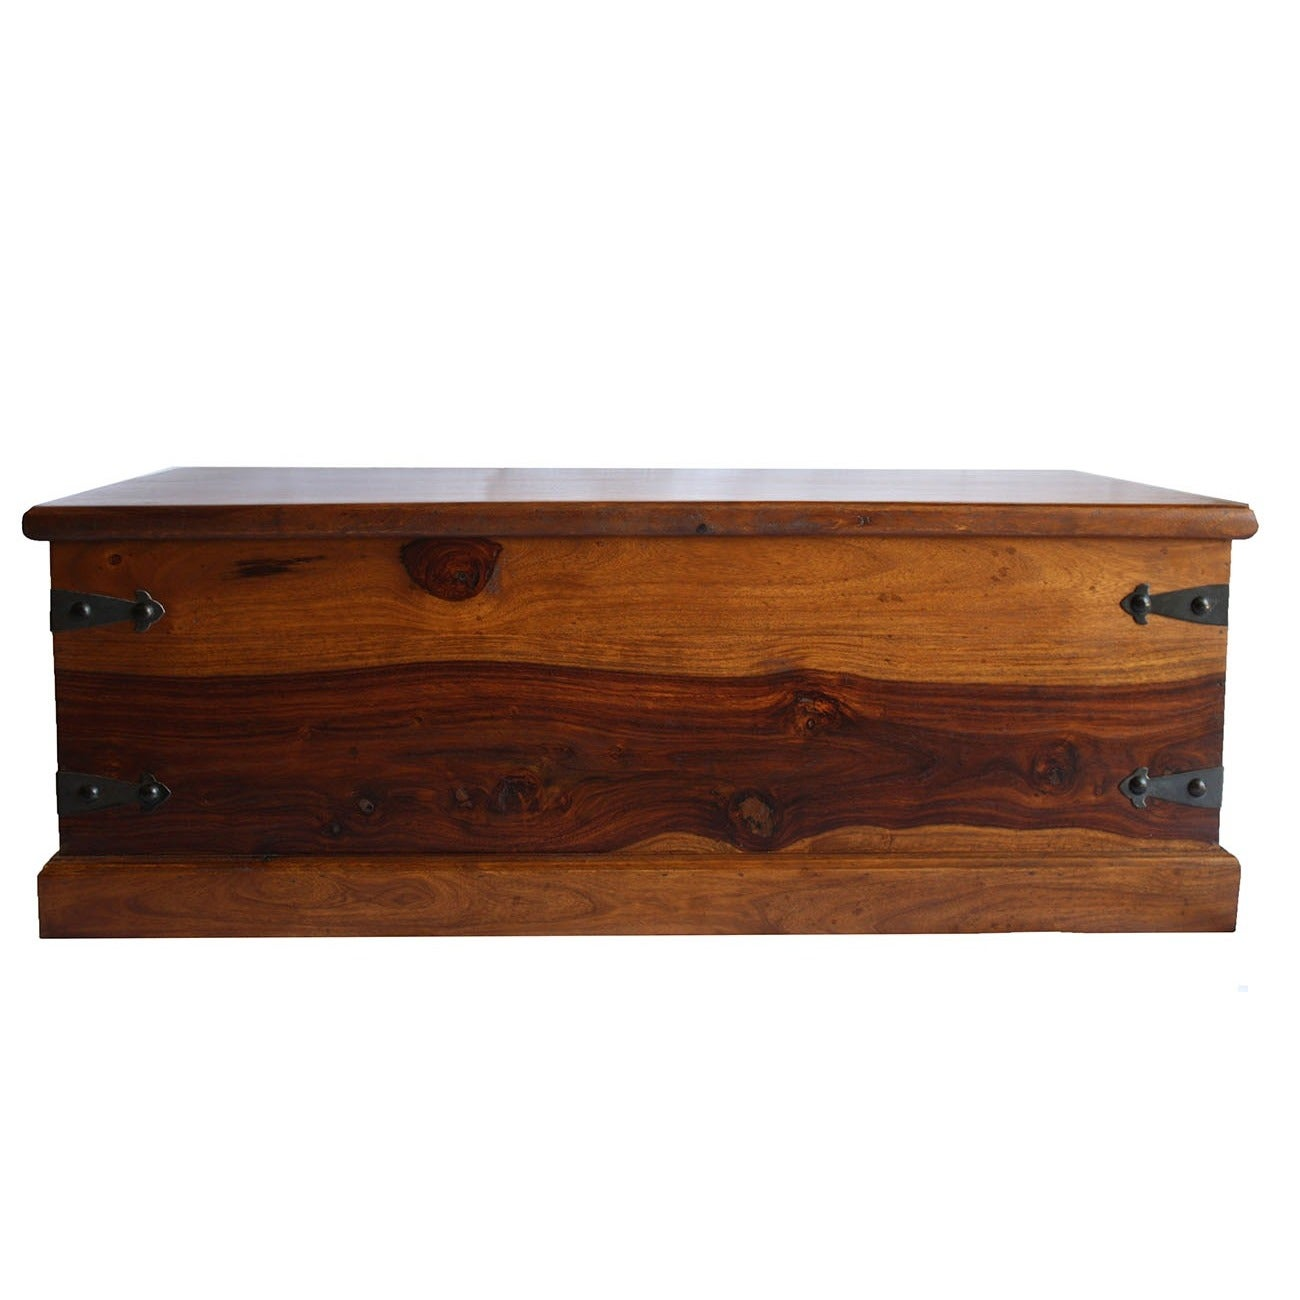 Timbergirl Solid Seesham Wood Trunk Coffee Table (India)